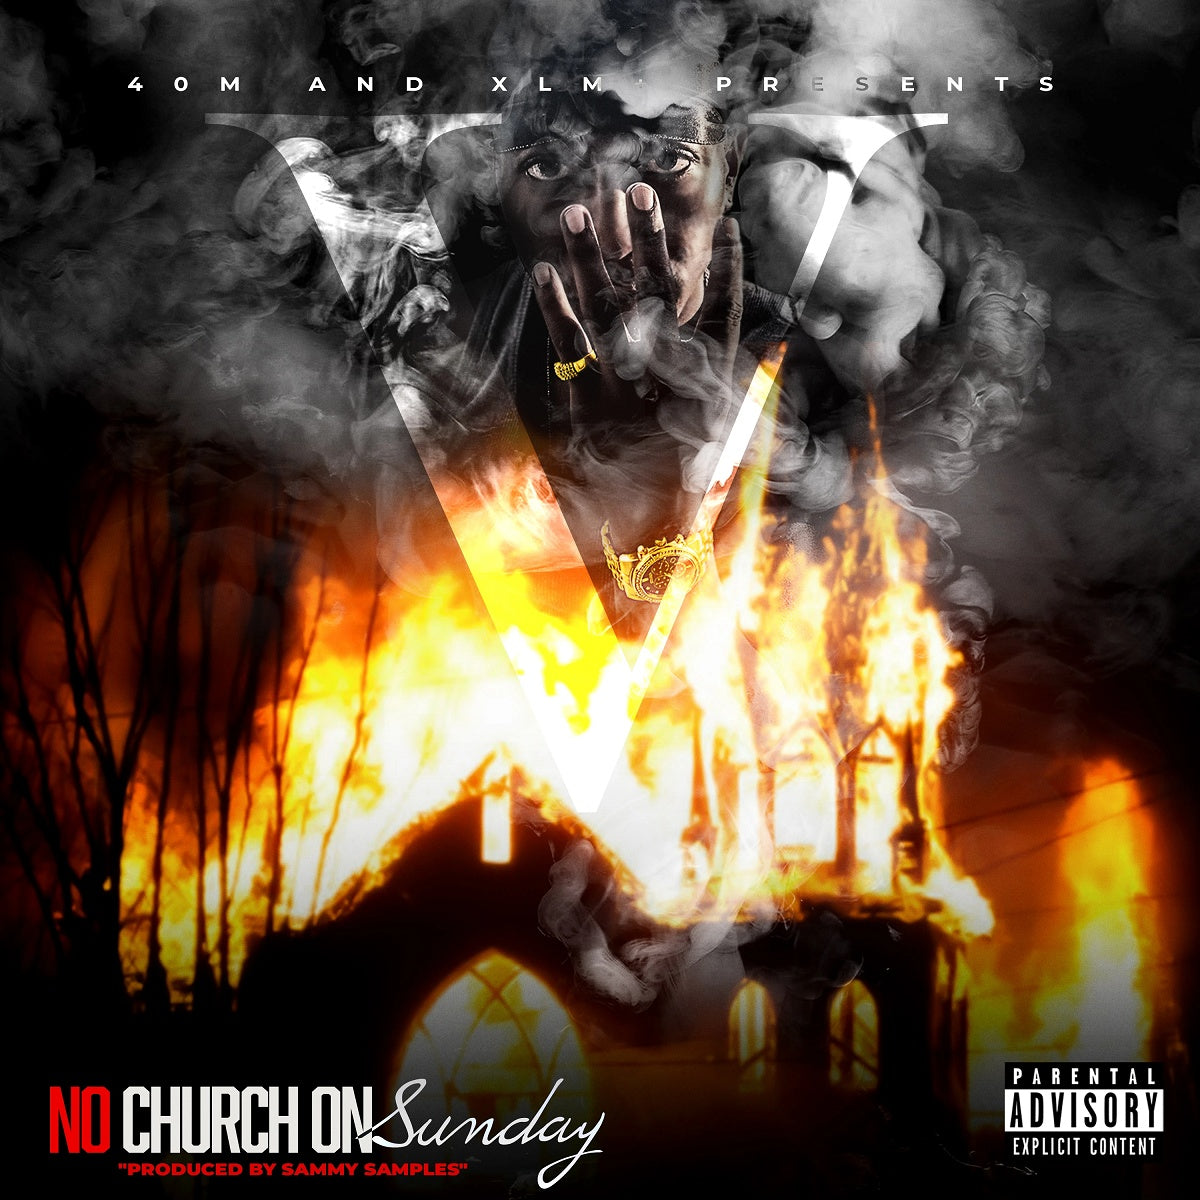 V - 'No Church on Sunday'